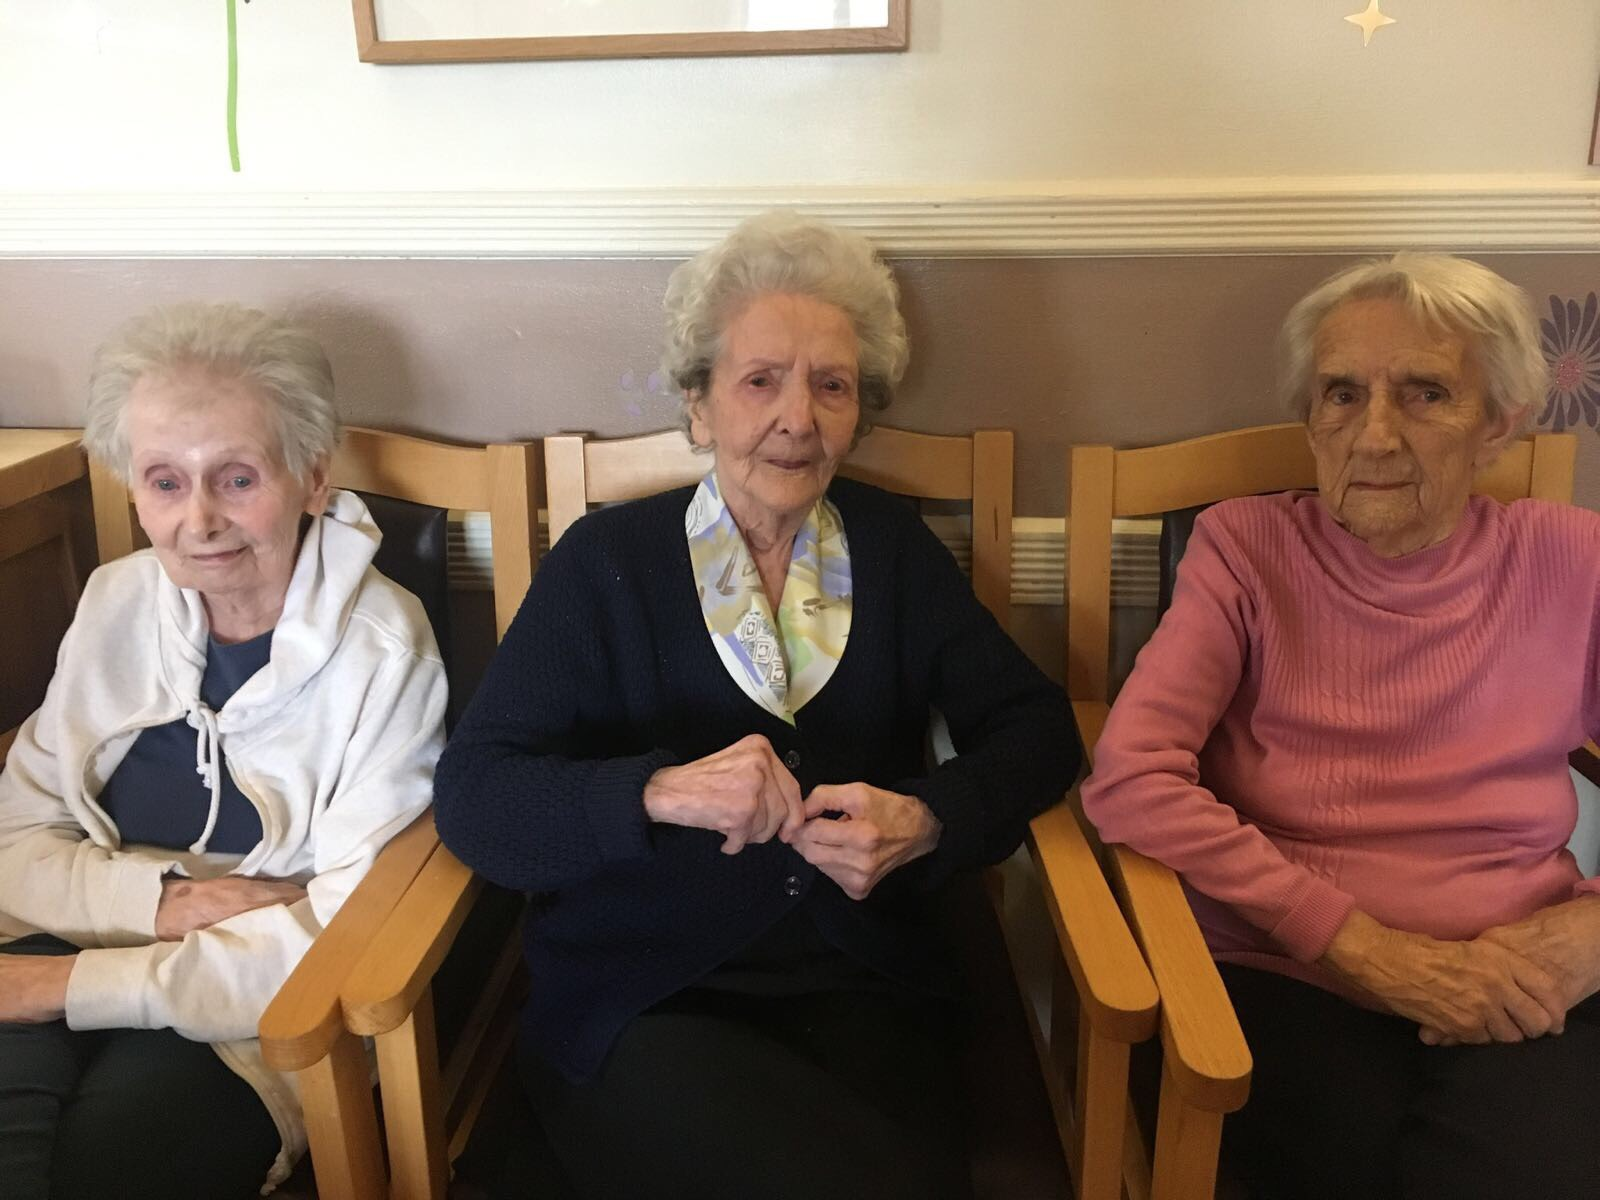 Beautiful.: Key Healthcare is dedicated to caring for elderly residents in safe. We have multiple dementia care homes including our care home middlesbrough, our care home St. Helen and care home saltburn. We excel in monitoring and improving care levels.